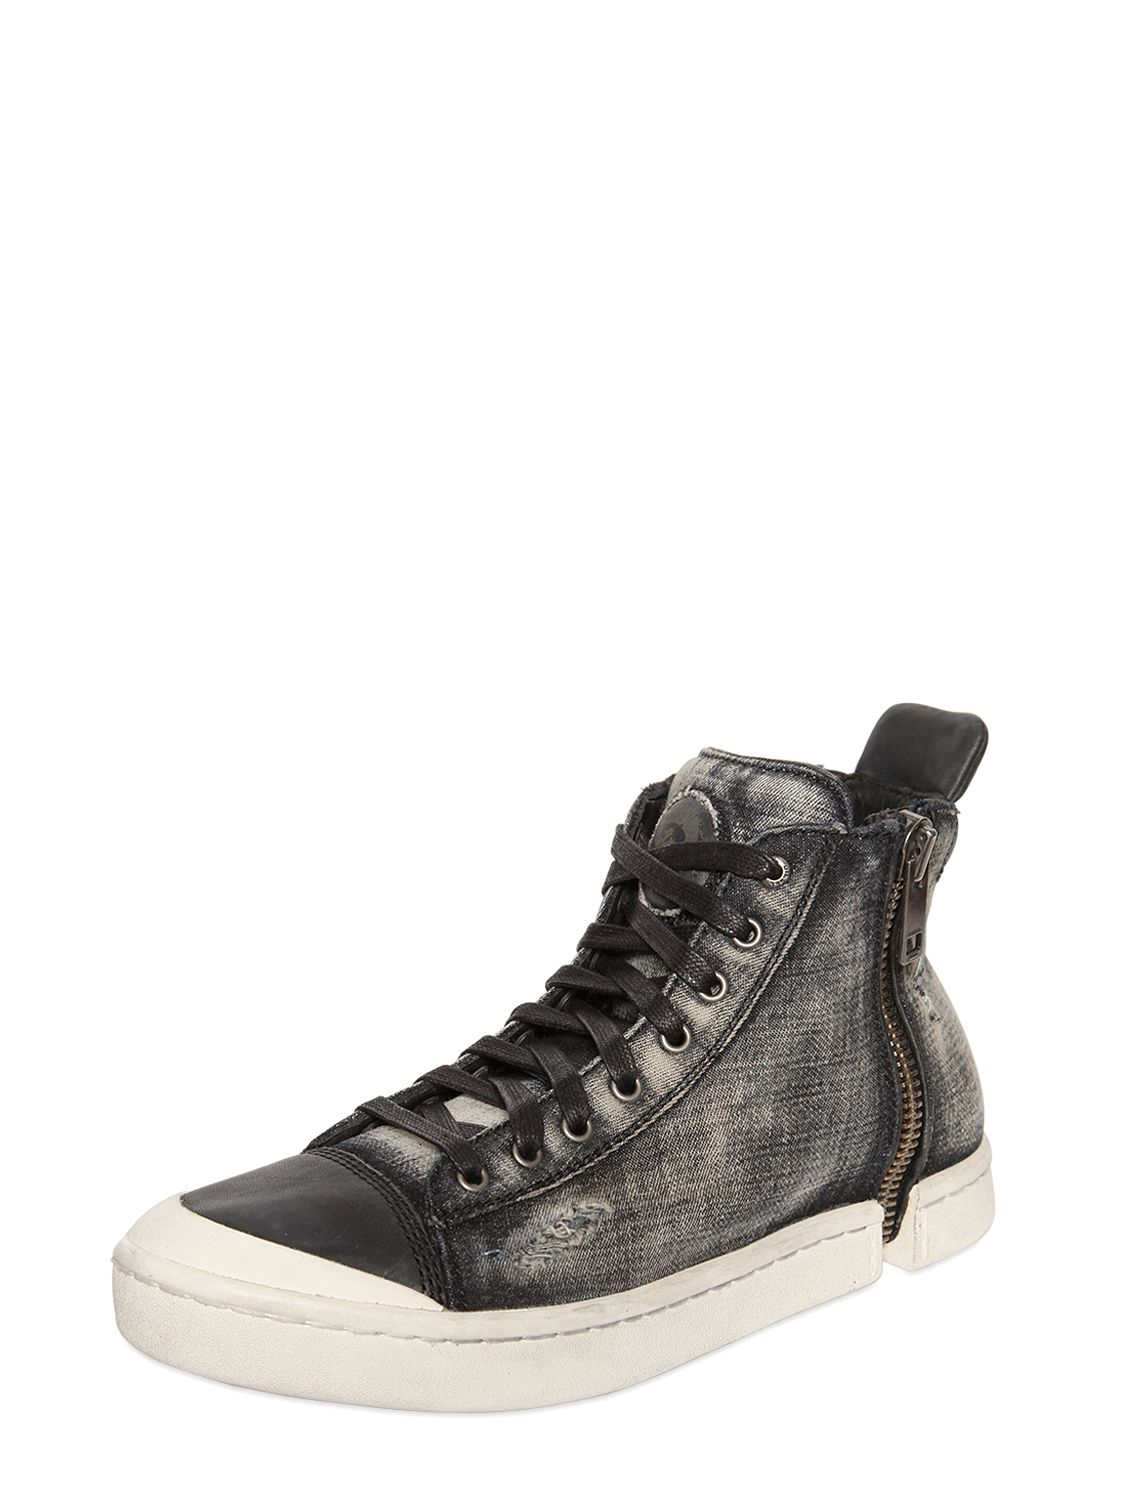 Diesel Snentish Zip Around Denim Sneakers In Grey Gray